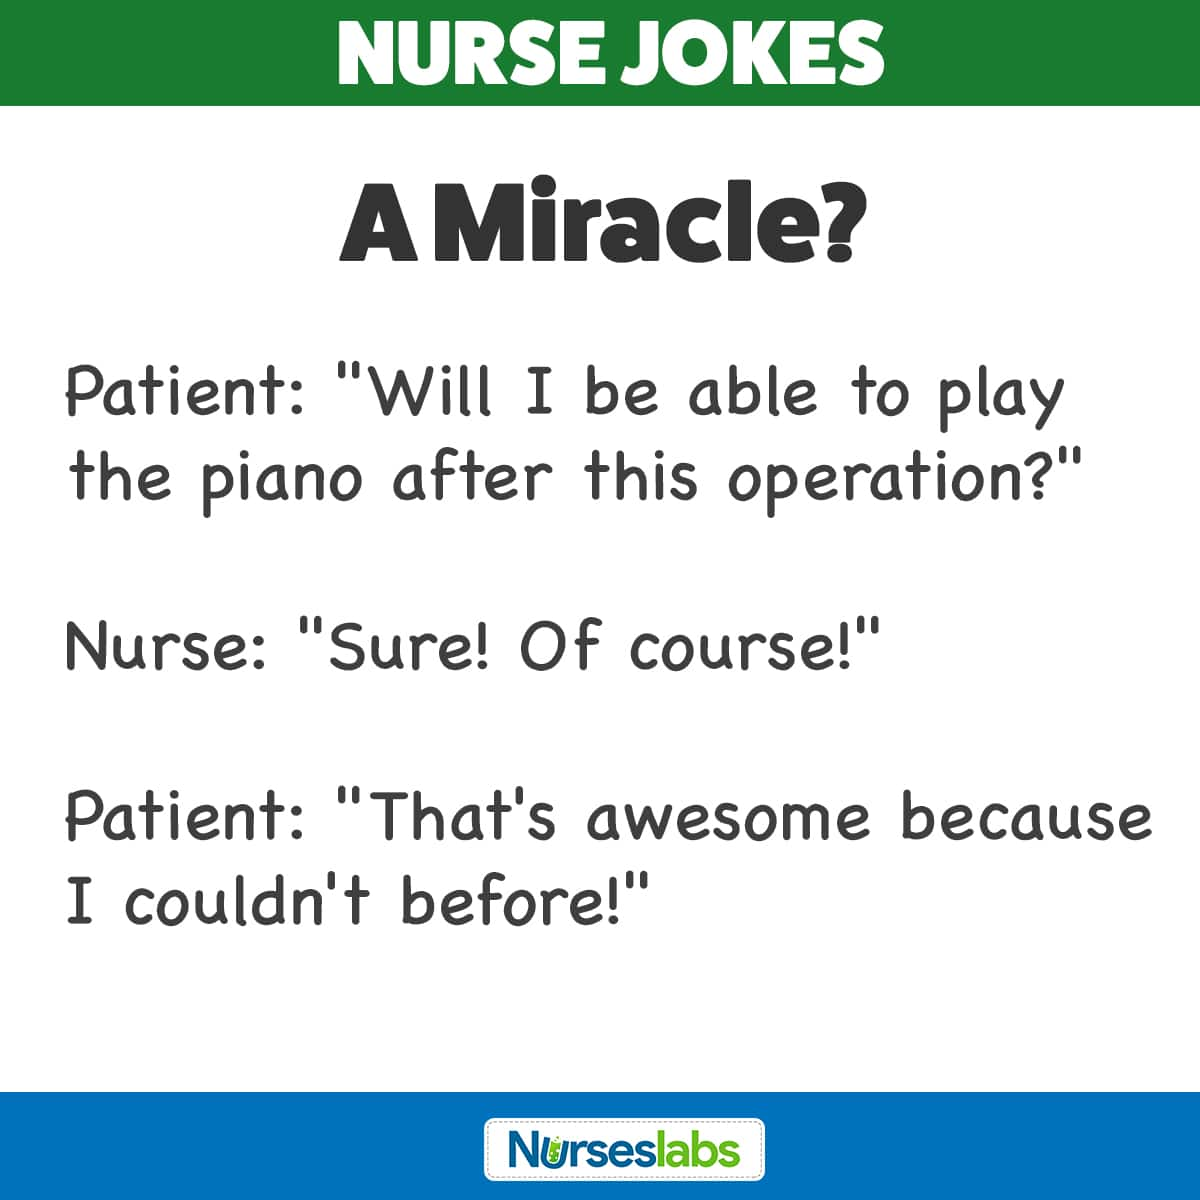 A miracle! Nurse Joke